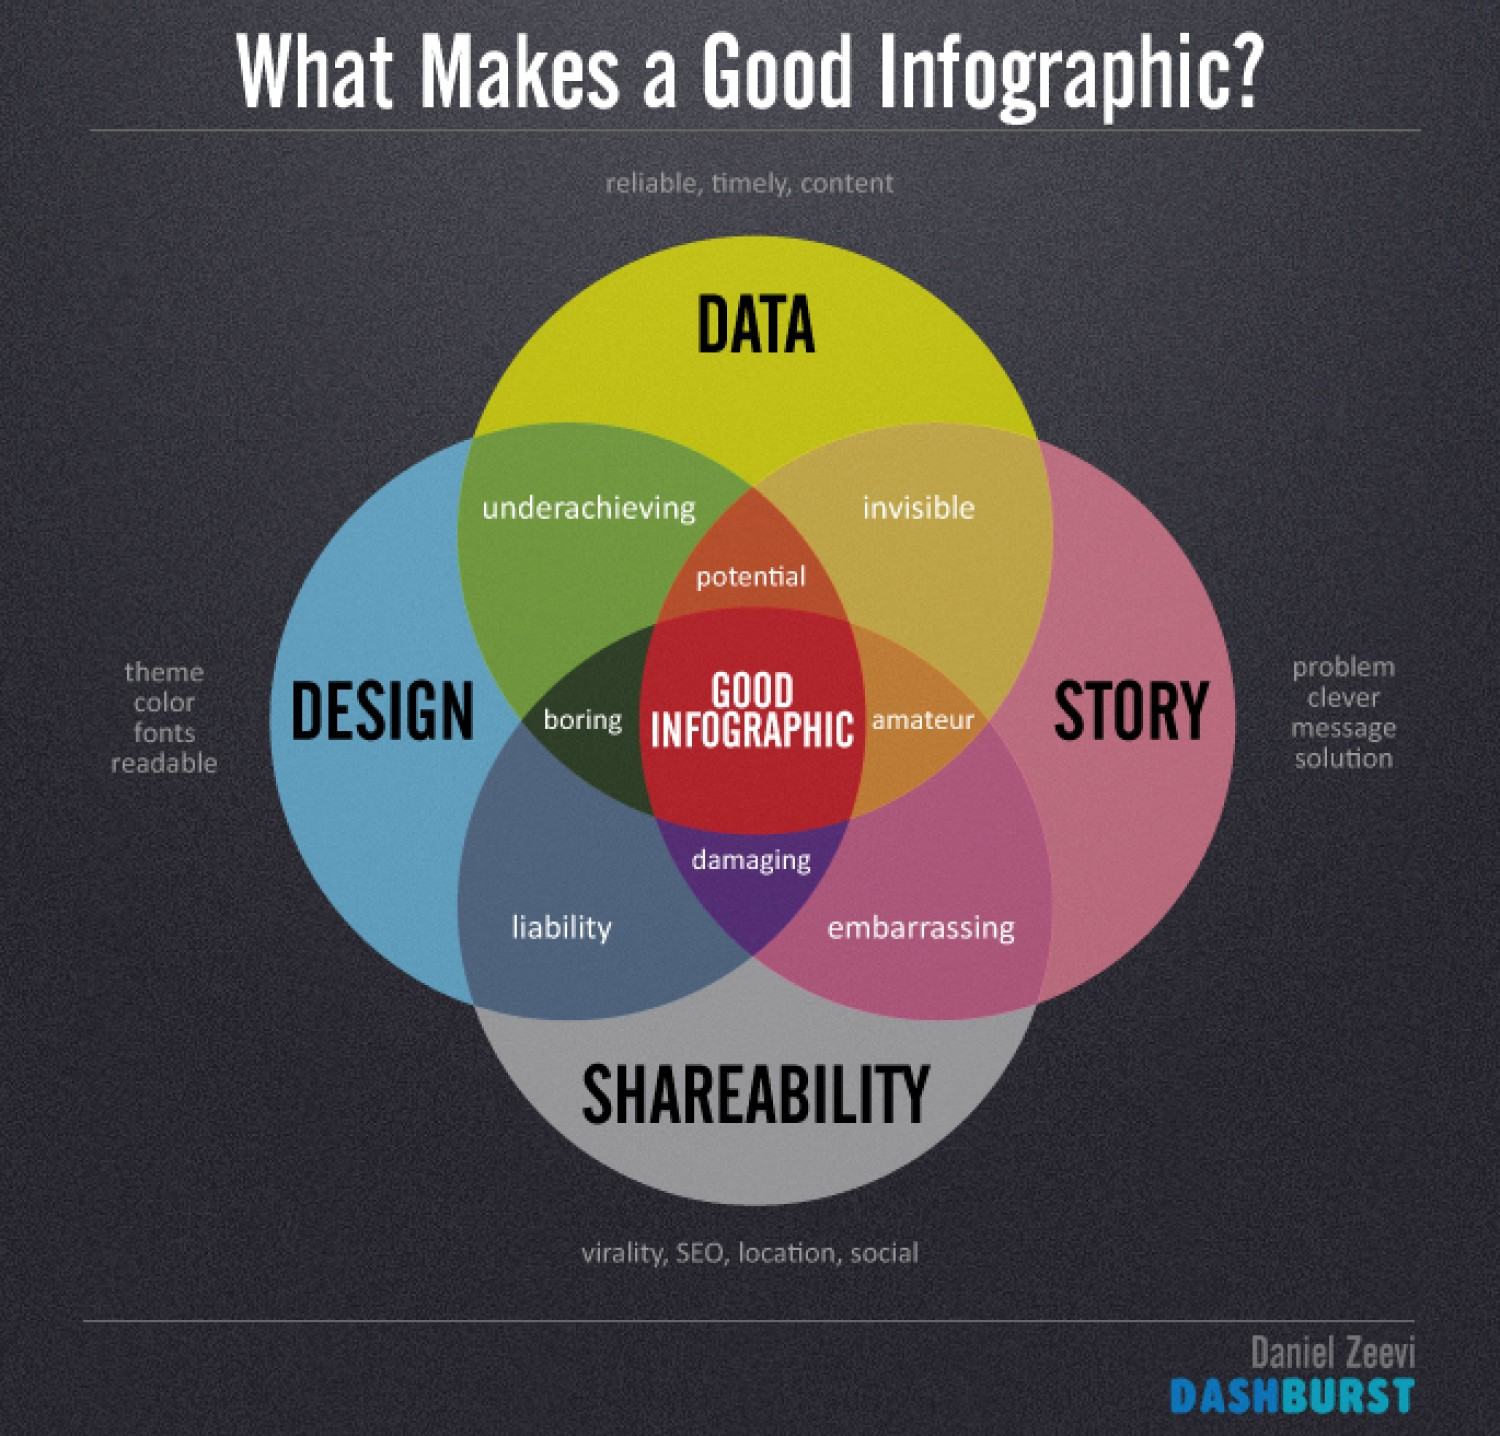 4 Common Infographic Mistakes To Avoid